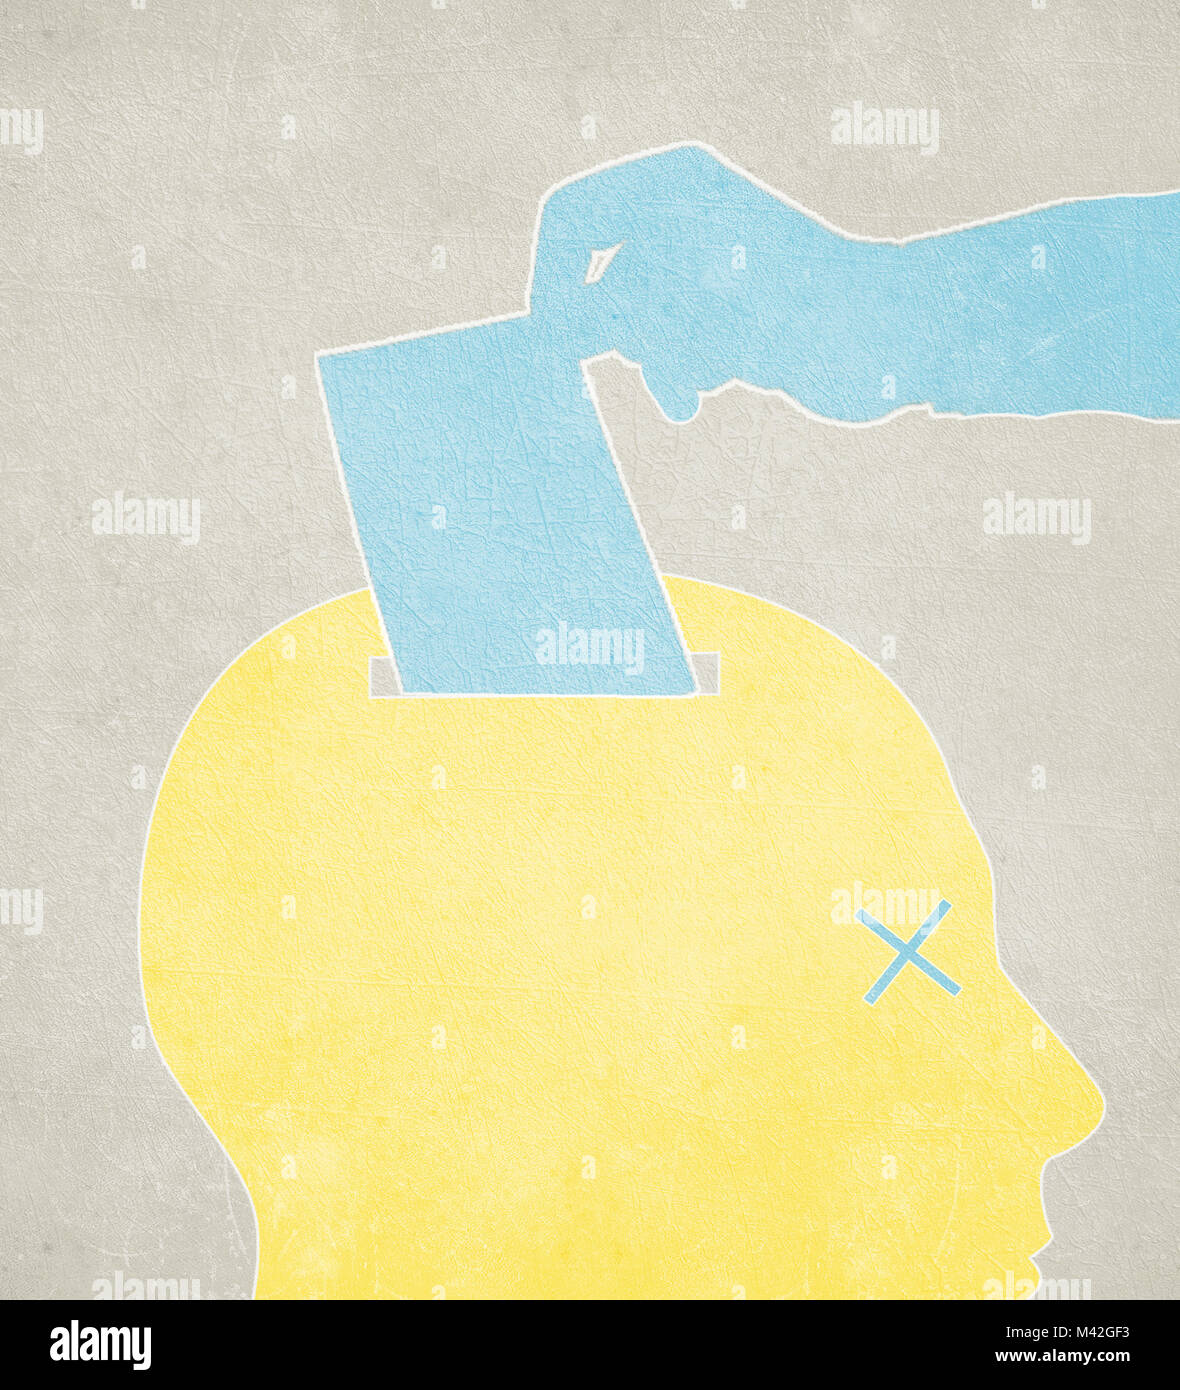 vote concept digital illustration with human head - Stock Image